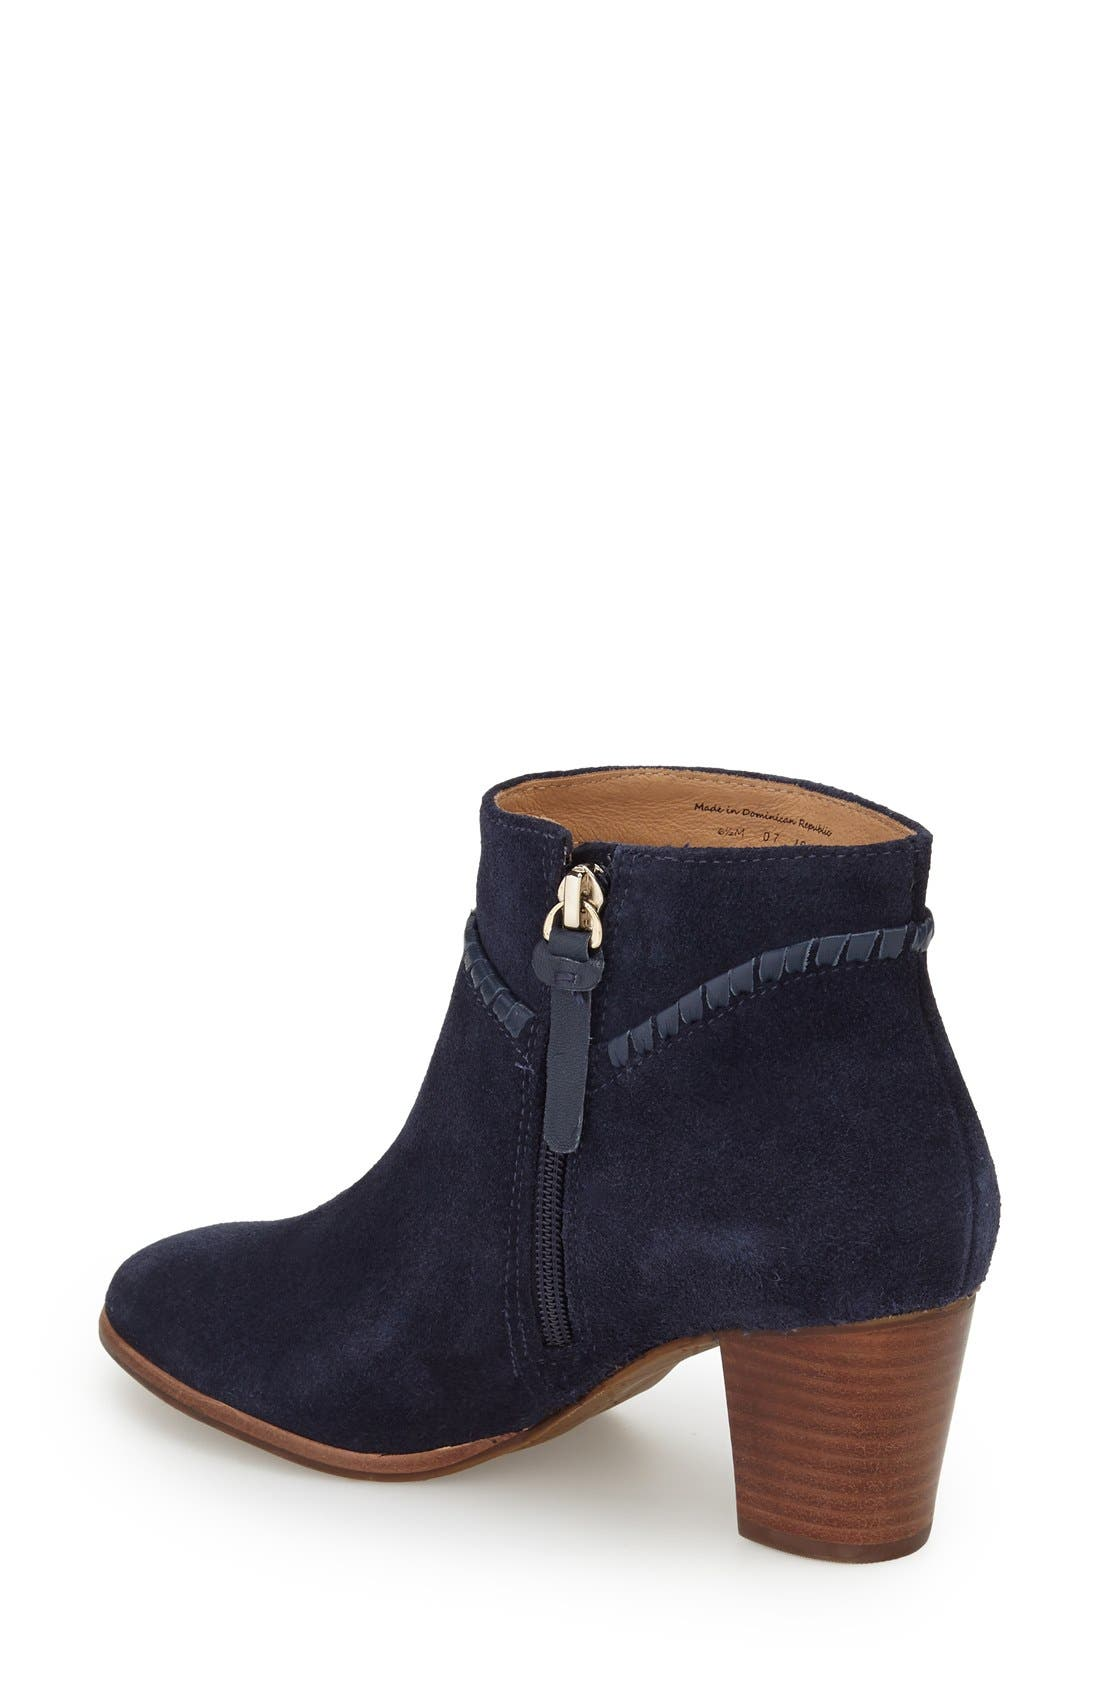 'Chandler' Bootie,                             Alternate thumbnail 2, color,                             Midnight Suede